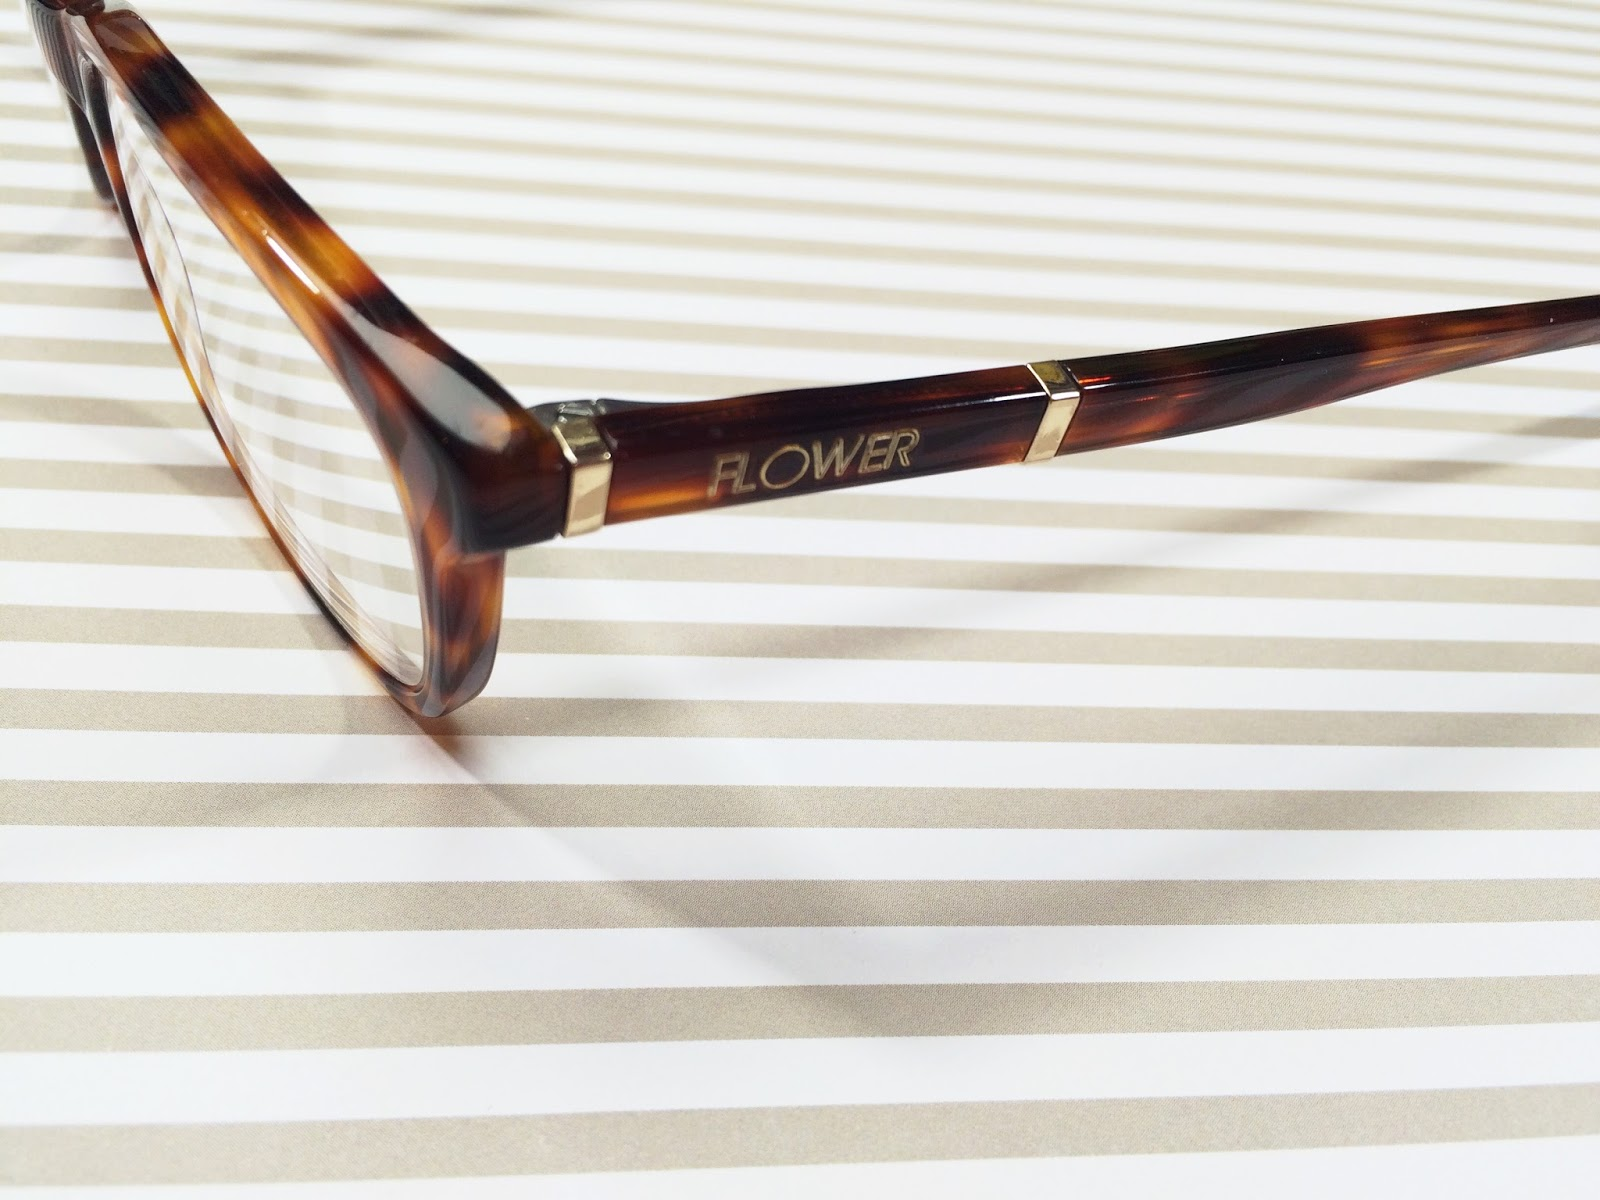 46d9523bb2 Each of the frames has the FLOWER logo in gold on the arms of the glasses.  They styles were different enough to tell them apart - some have thick  plastic ...